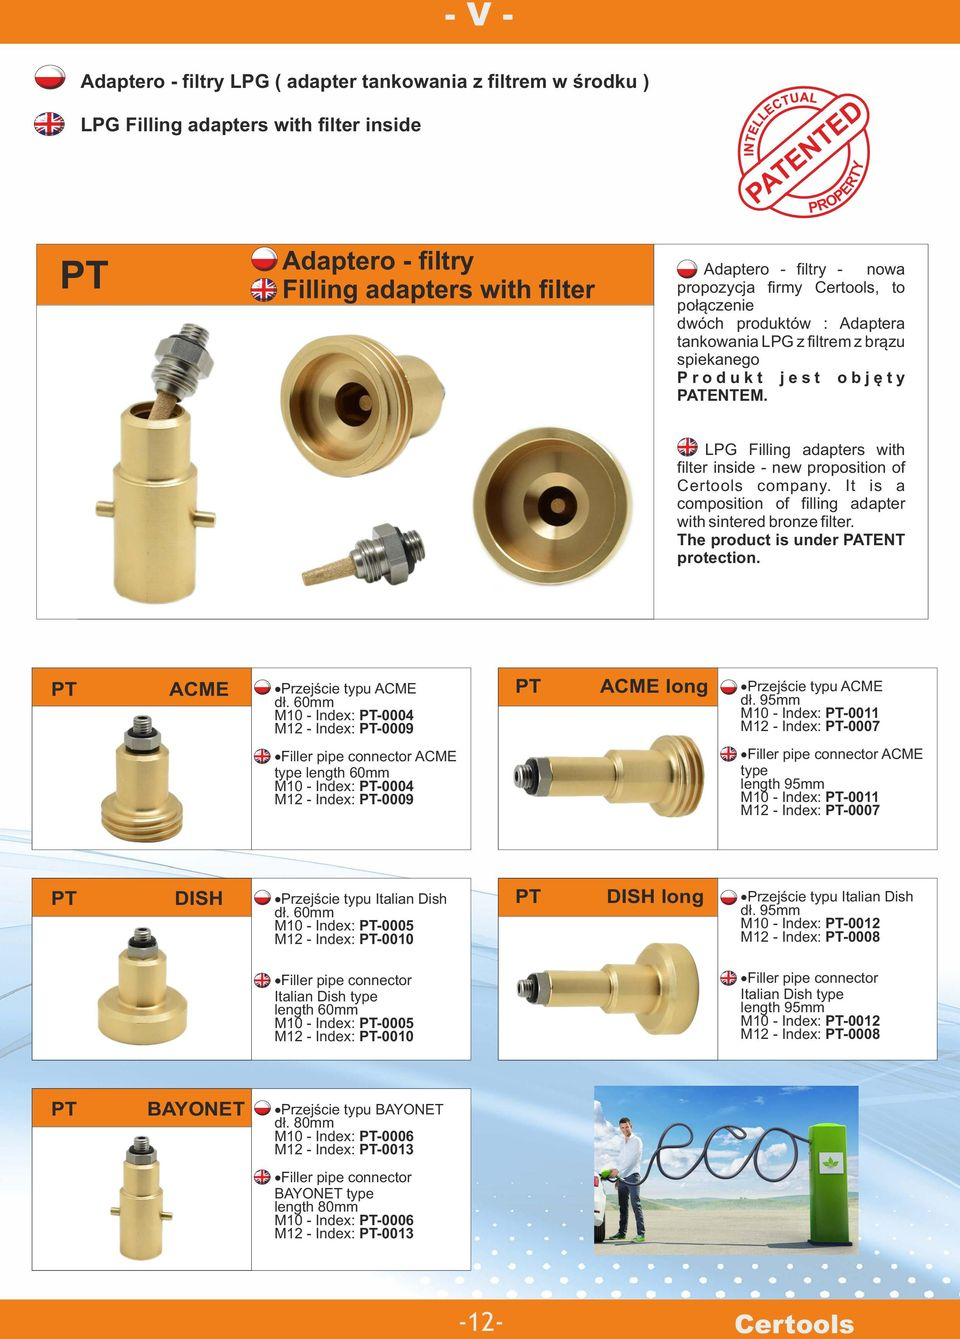 LPG Filling adapters with filter inside - new proposition of Certools company. It is a composition of filling adapter with sintered bronze filter. The product is under PATENT protection.